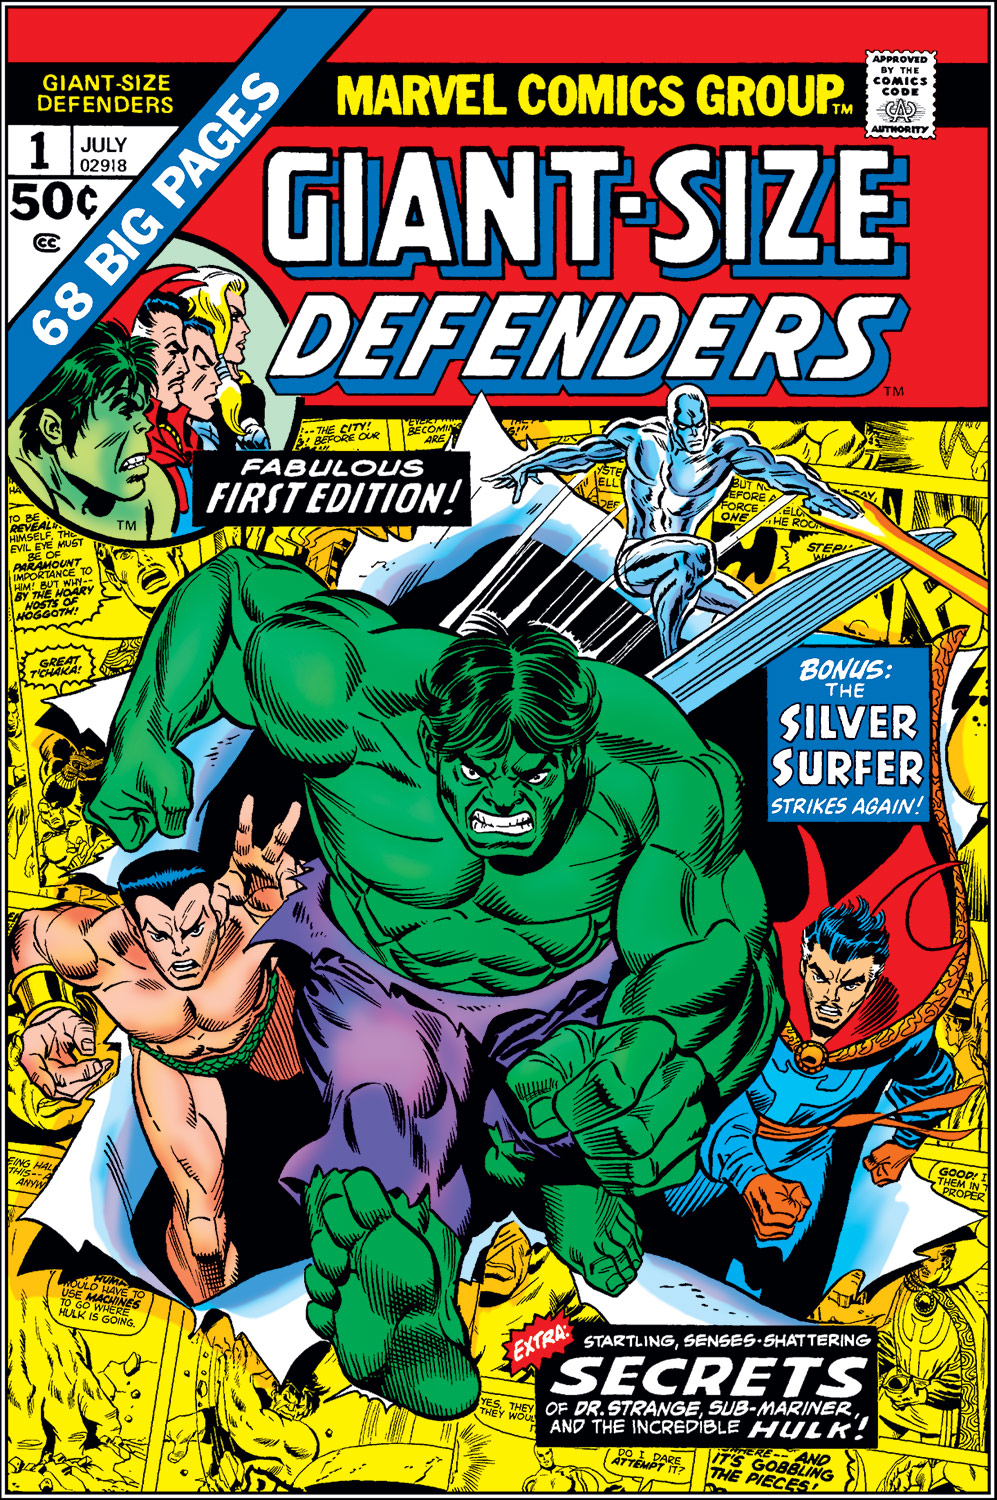 Giant-Size Defenders (1974) #1